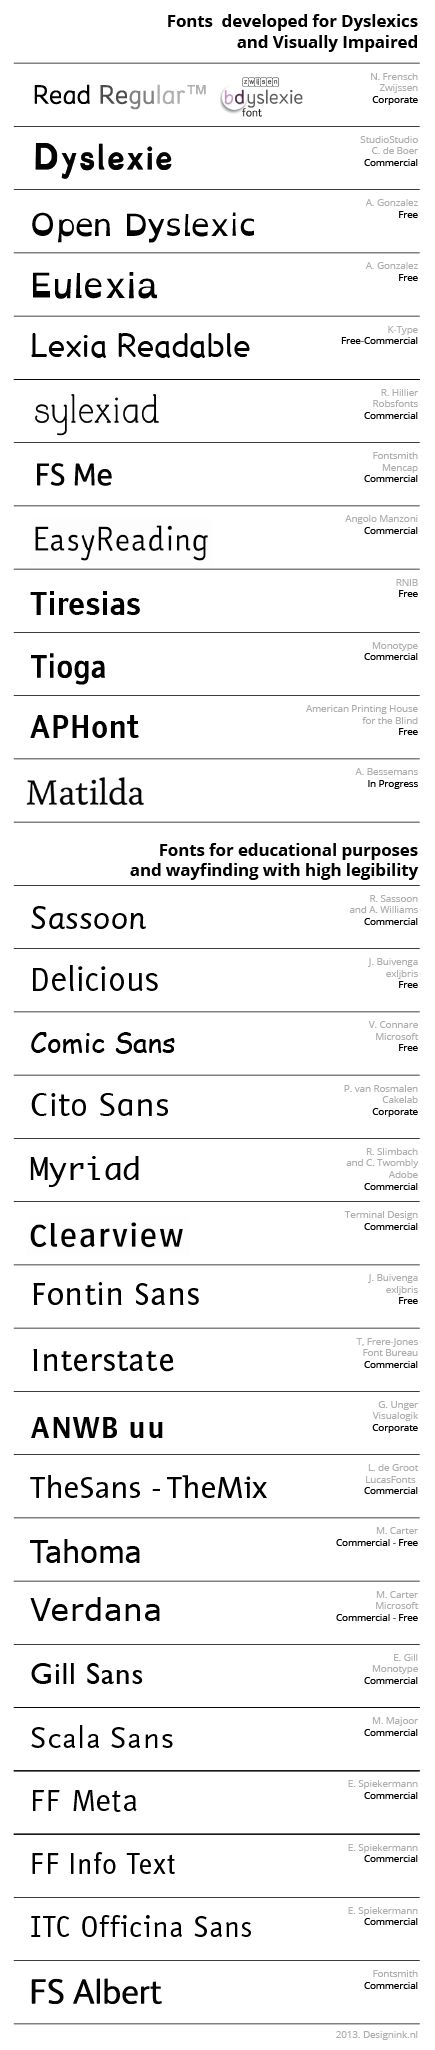 Fonts for Dyslexics and Visually Impaired | Overview